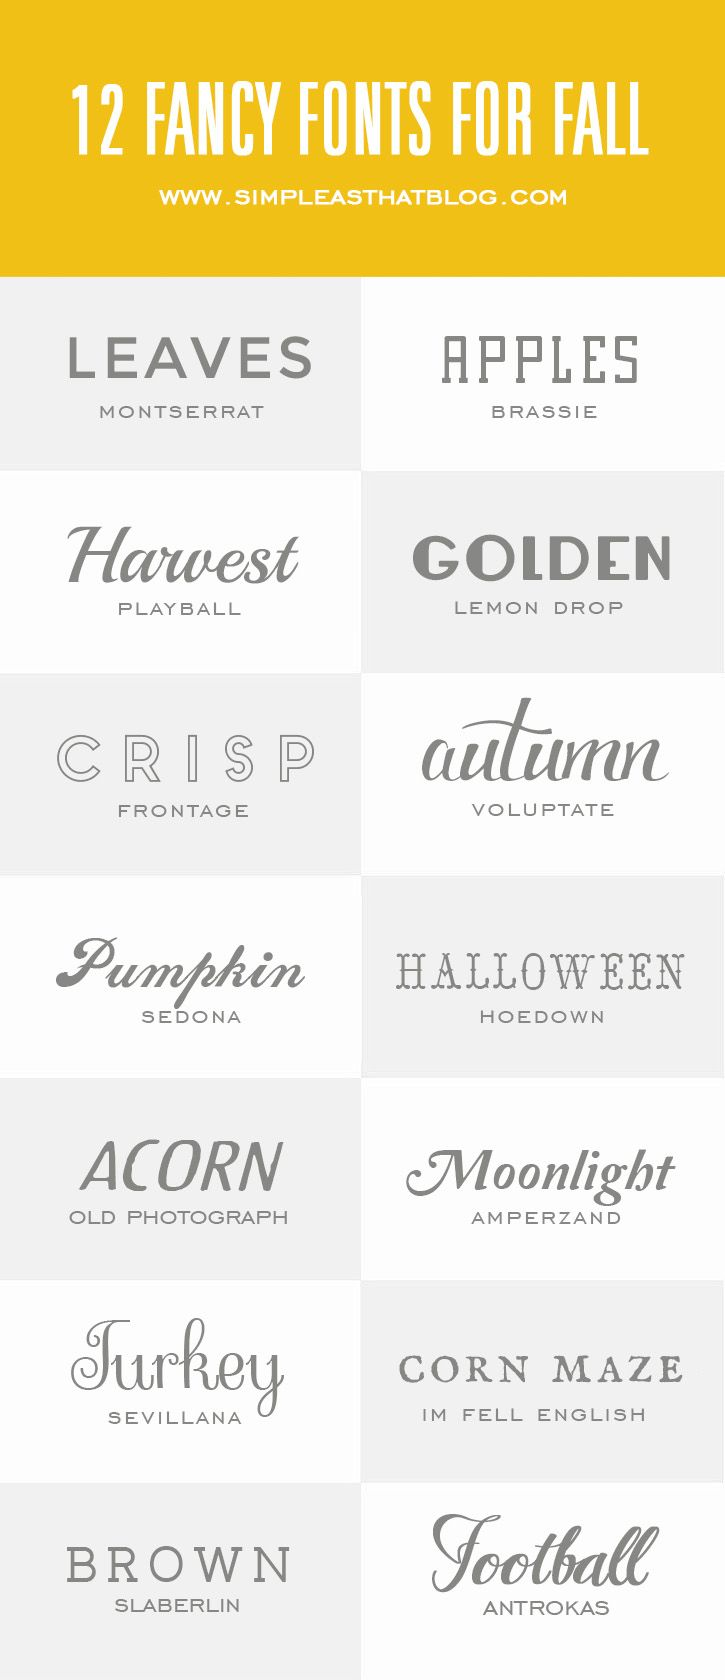 14 Fancy Fonts for Fall // Simple as That Blog @rebeccacooper #fall #fonts